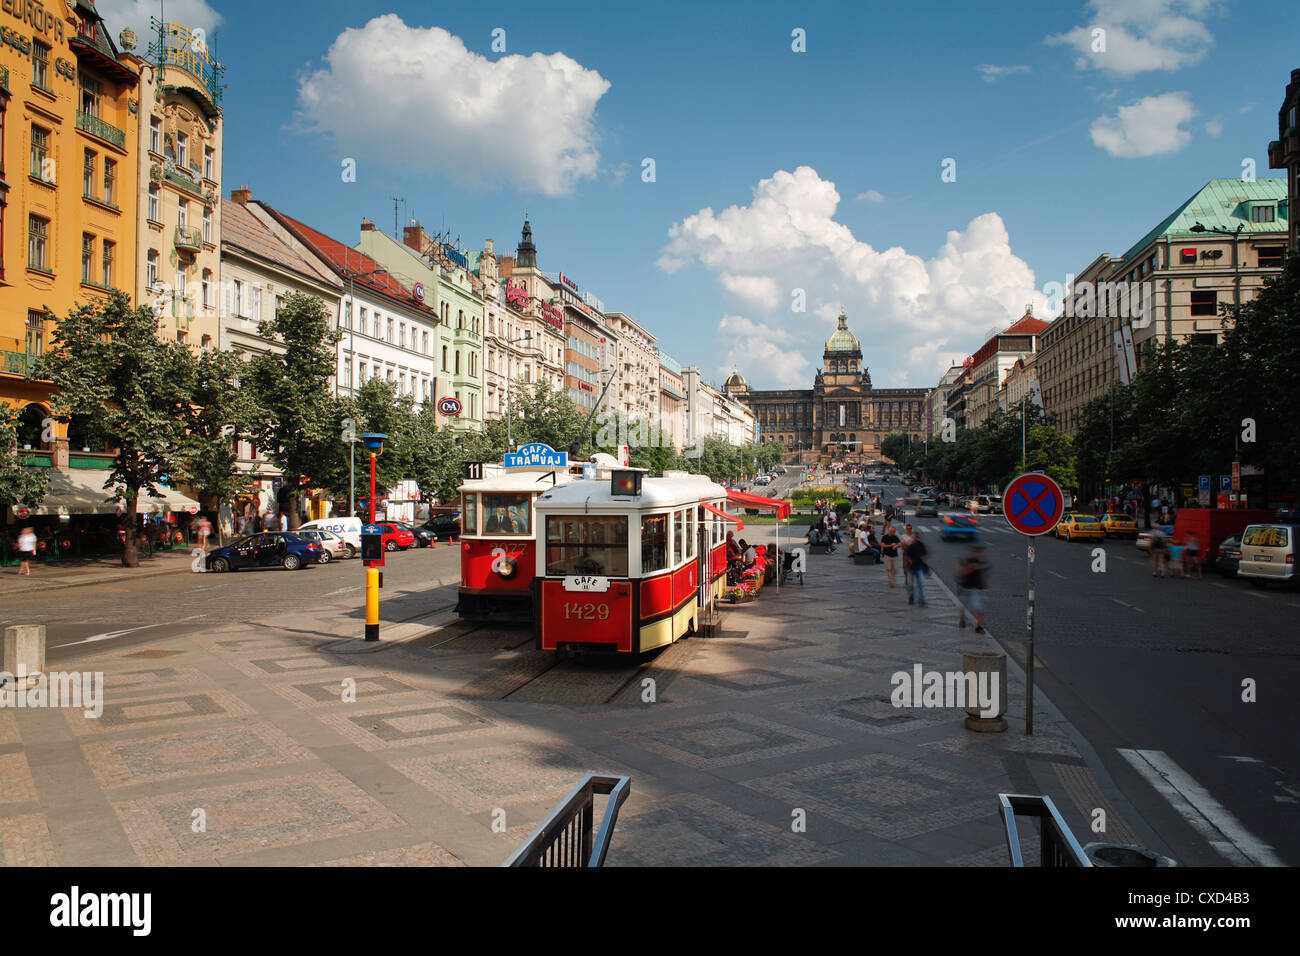 Wenceslas Square, Prague, République Tchèque, Europe Photo Stock